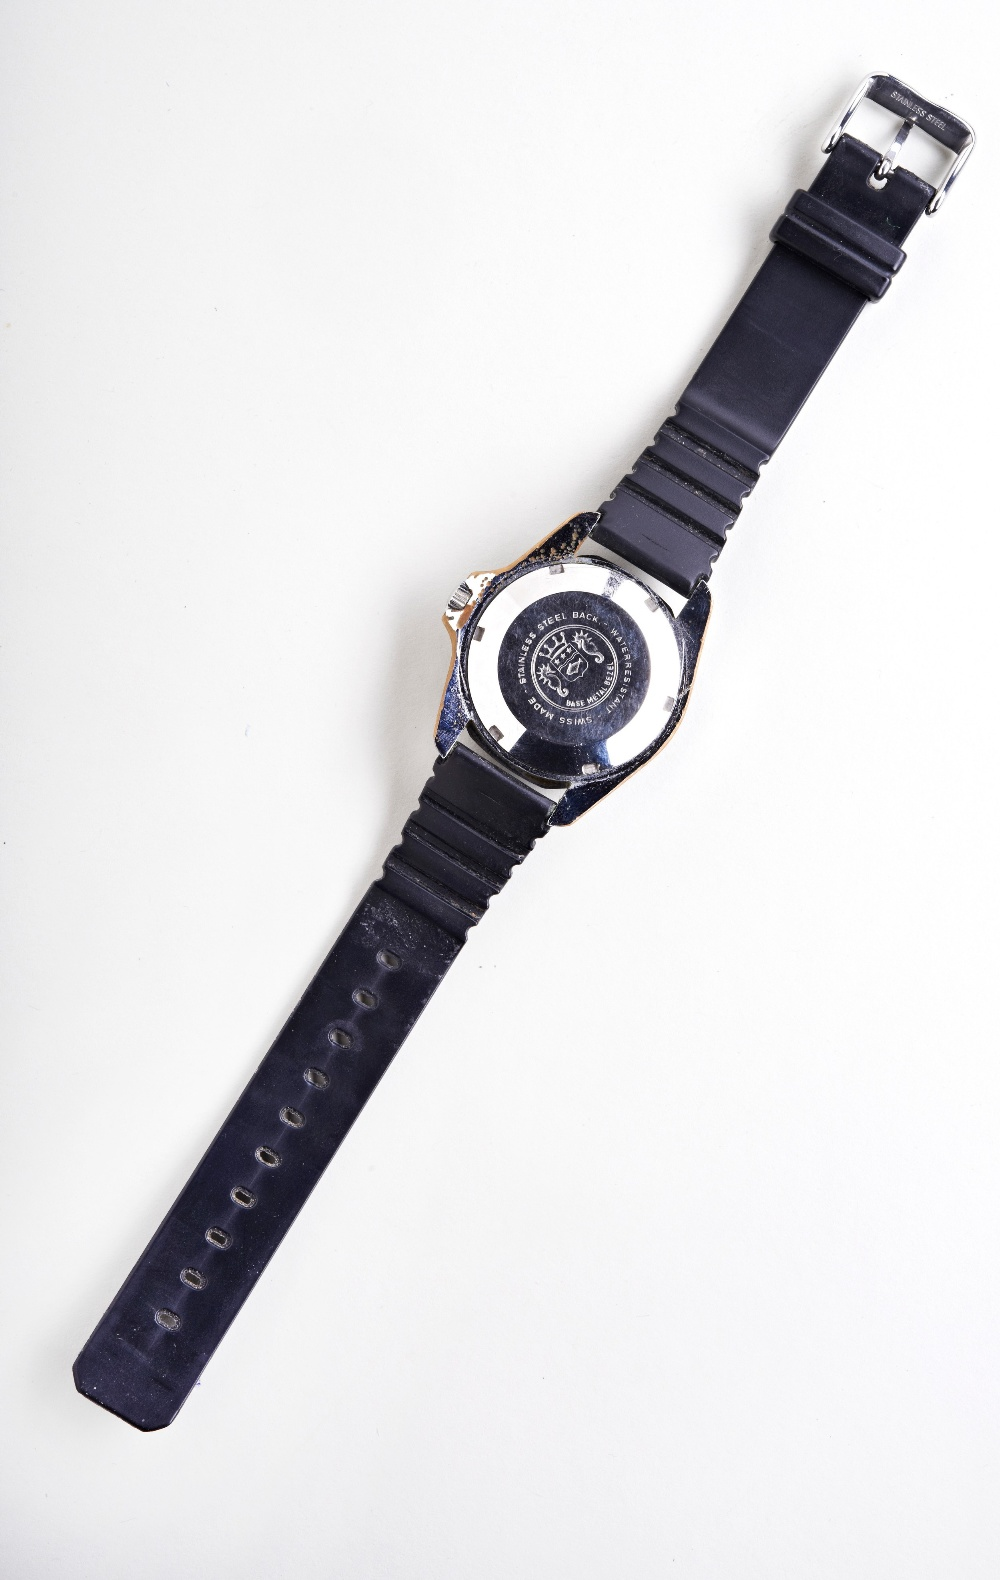 SICURA MARINE STAR AUTOMATIC STEEL 'DIVERS' WATCH, c1975, with rotating bezel, blue gradient dial - Image 3 of 3